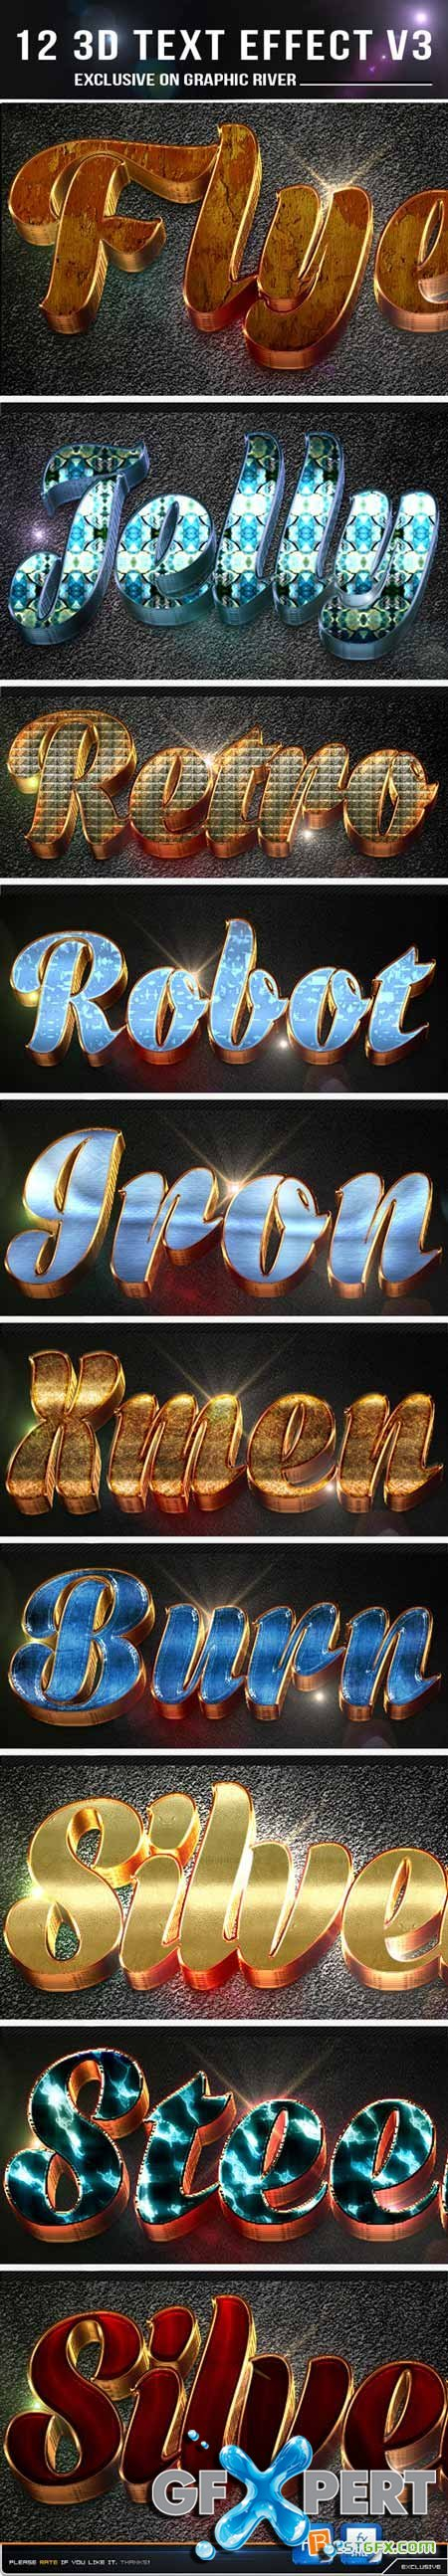 Graphicriver 12 3d Text Effect v3 10892169